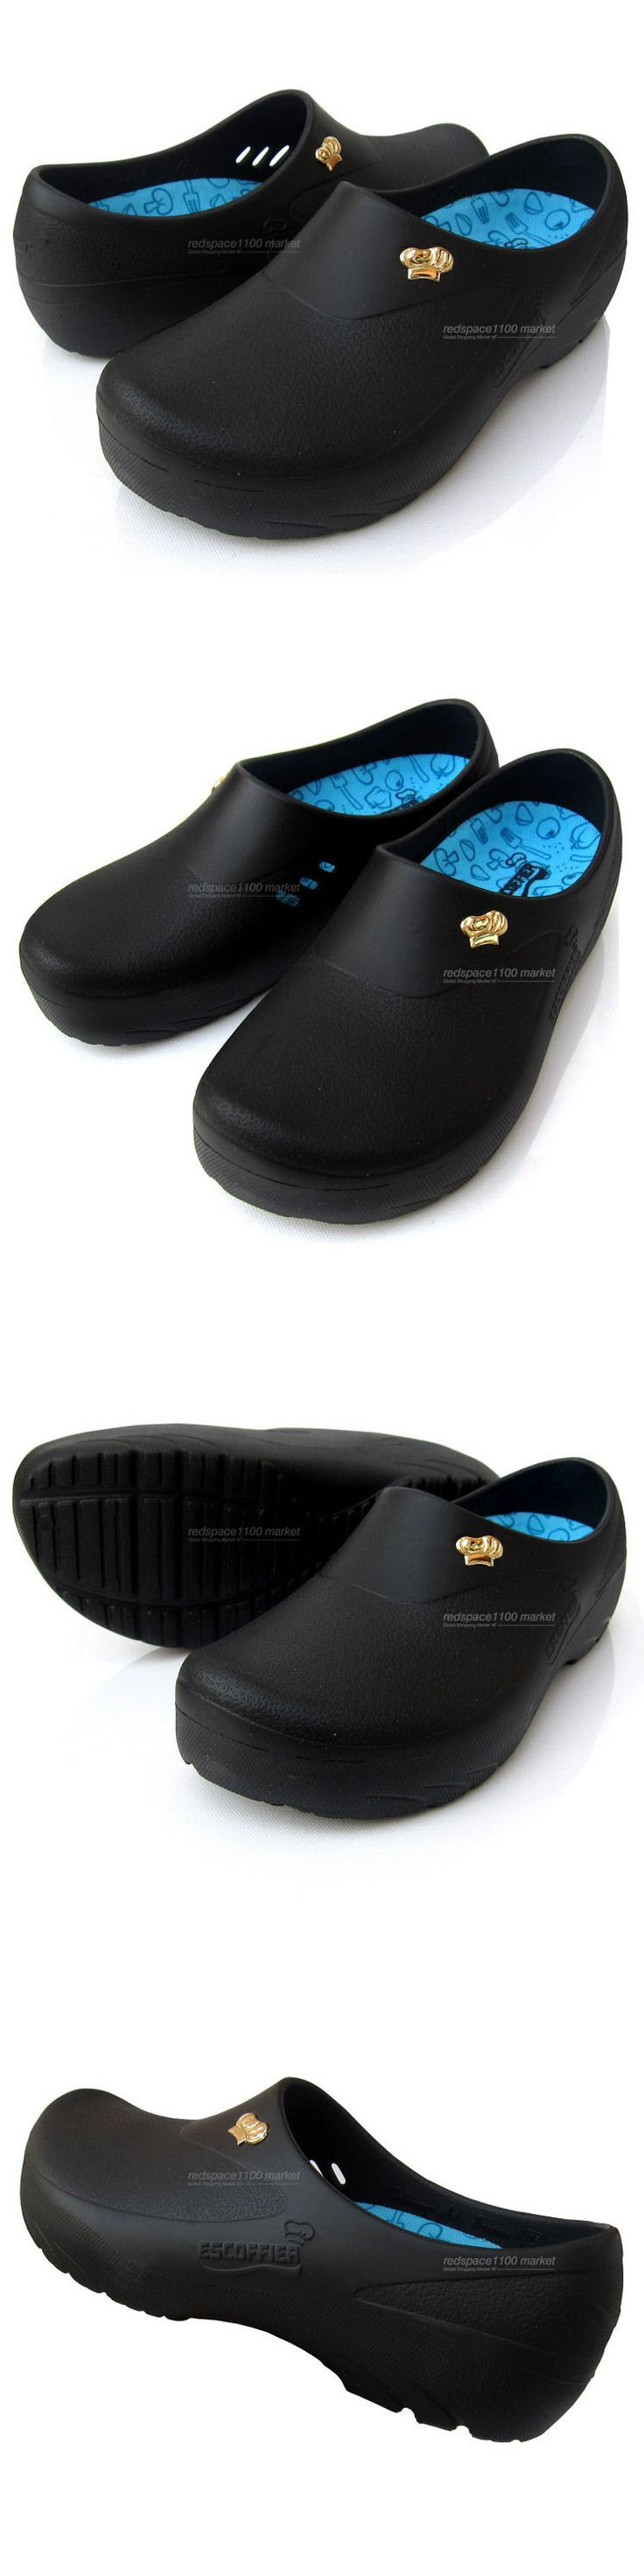 Occupational 11501: Men Chef Shoes Comfort Clogs Kitchen Nonslip Shoes Safety Black Shoes -> BUY IT NOW ONLY: $48.5 on eBay!